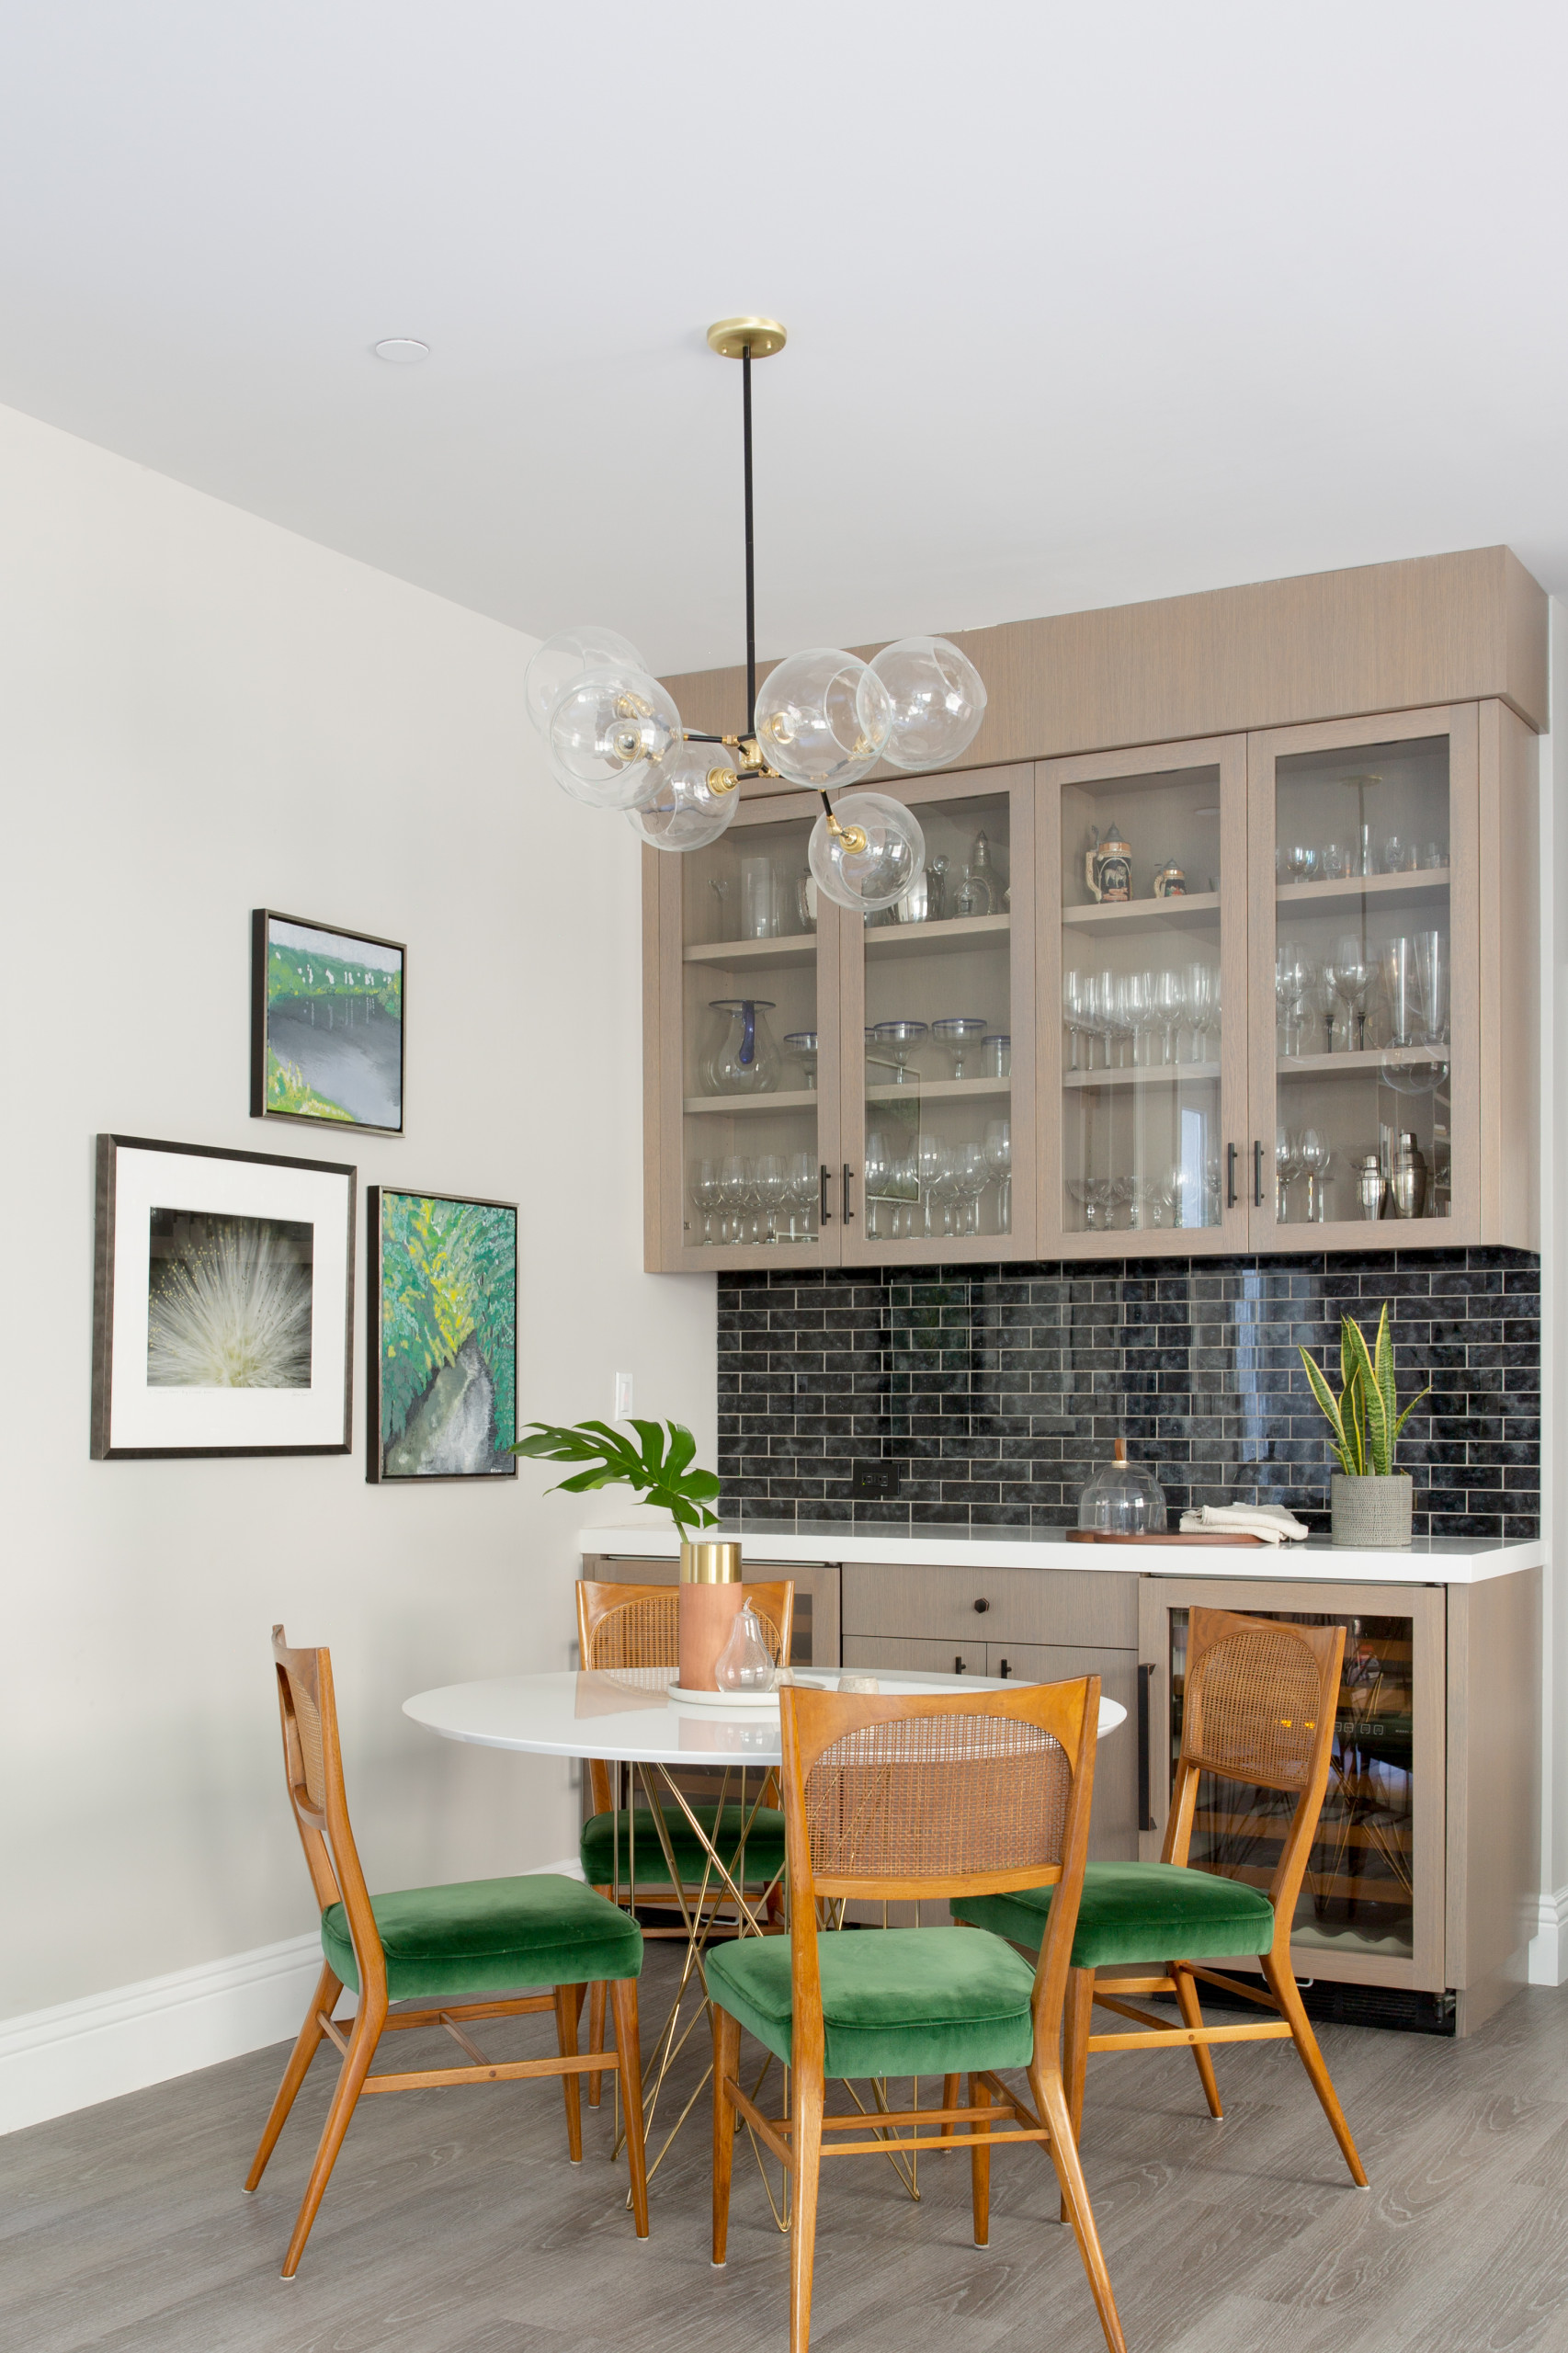 75 Beautiful Single Wall Home Bar Pictures Ideas December 2020 Houzz